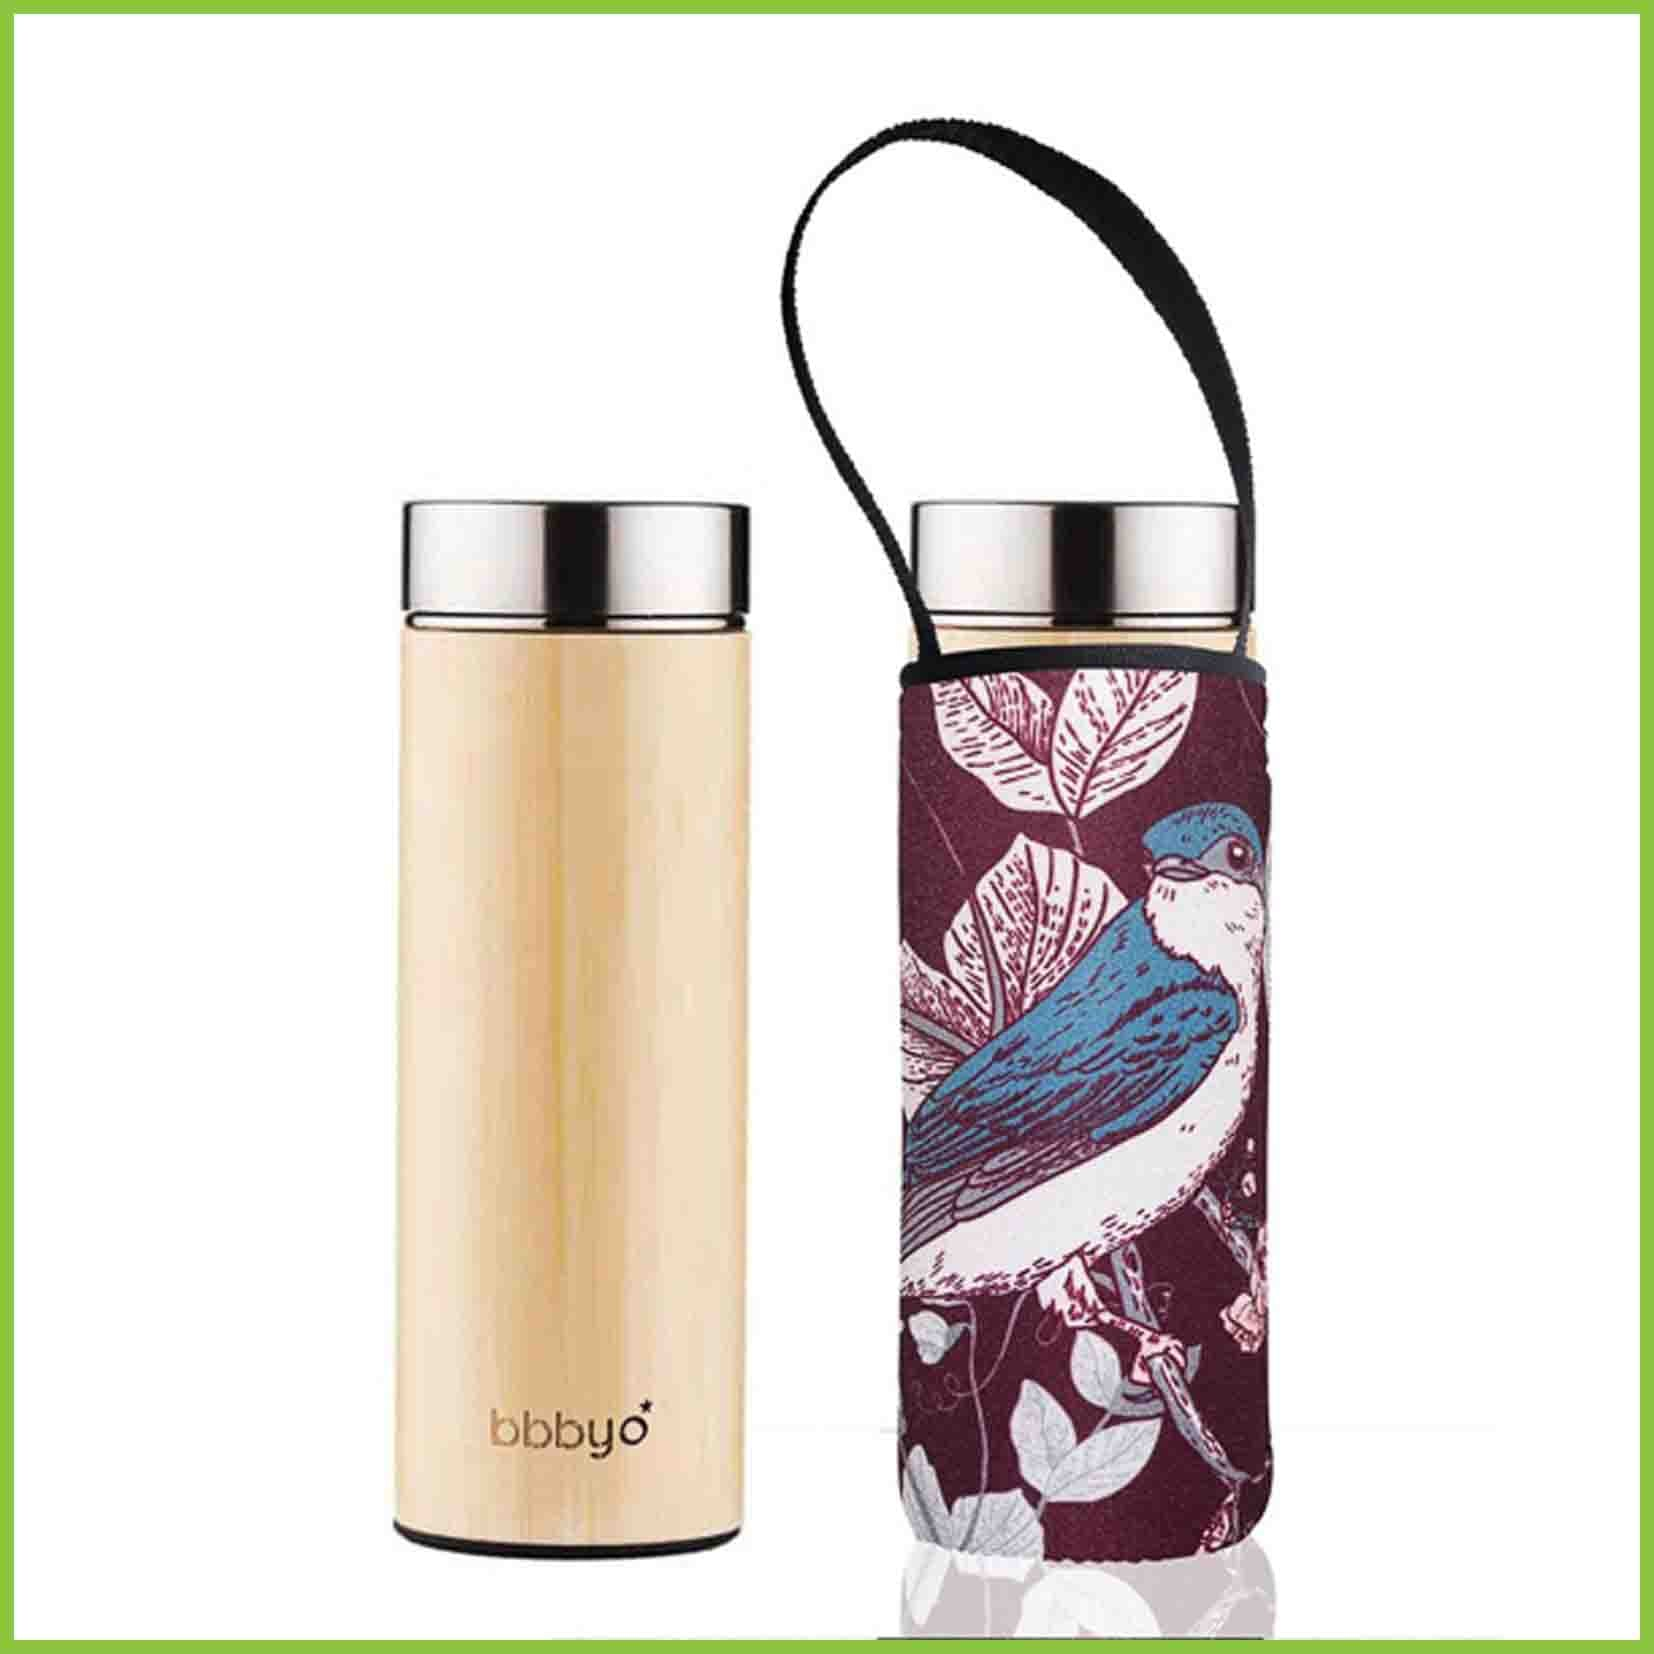 Bamboo tea flask with a maroon coloured carry cover with a bluebird design.